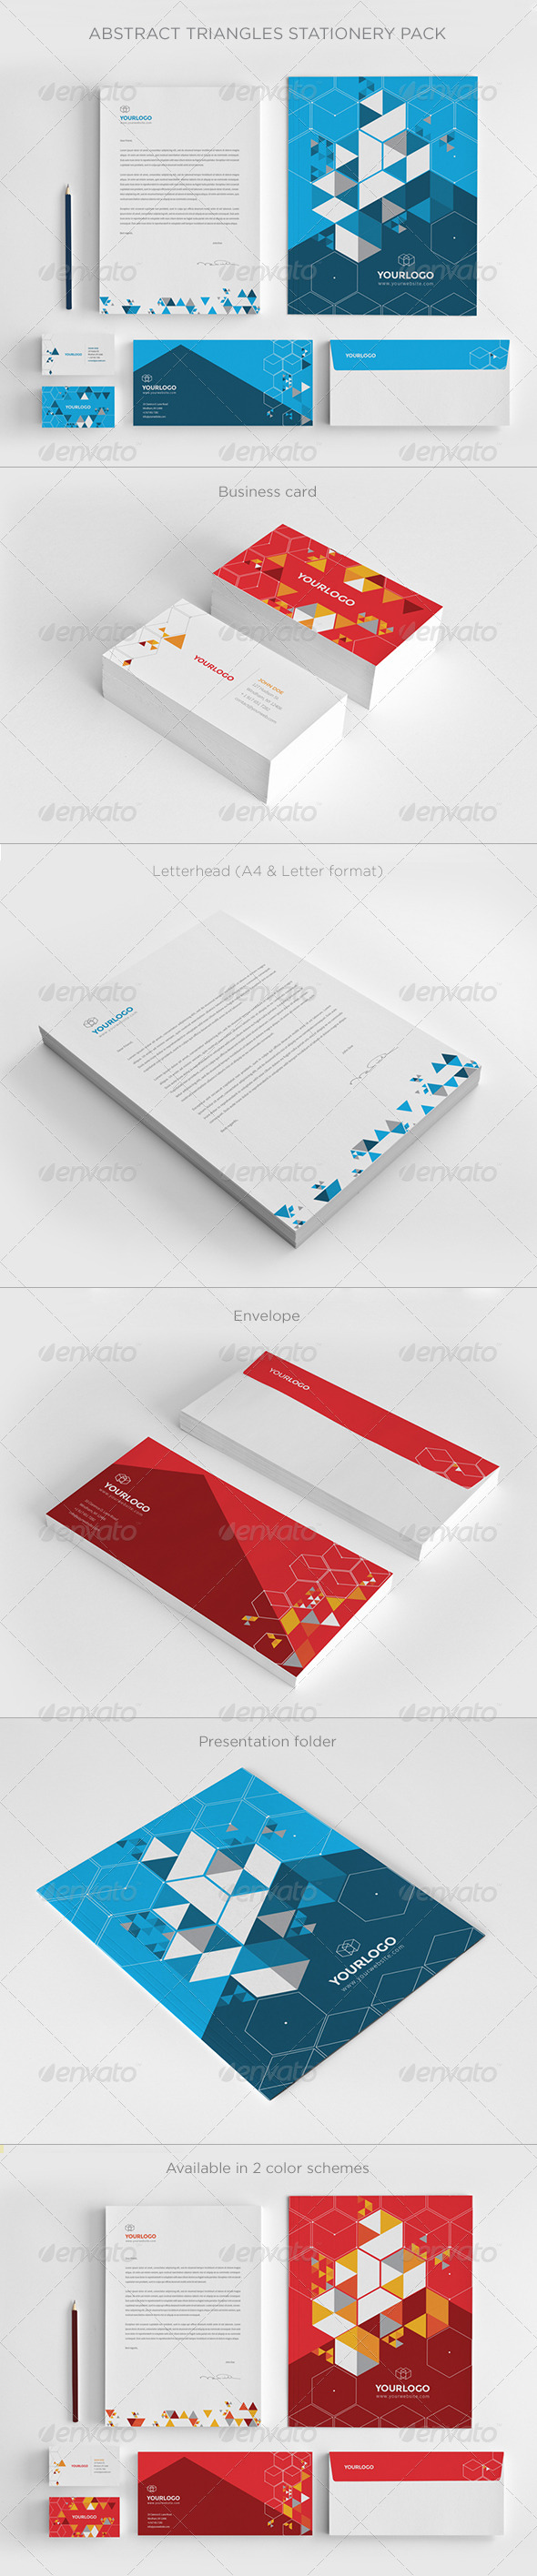 GraphicRiver Abstract Triangles Stationery Pack 7301957